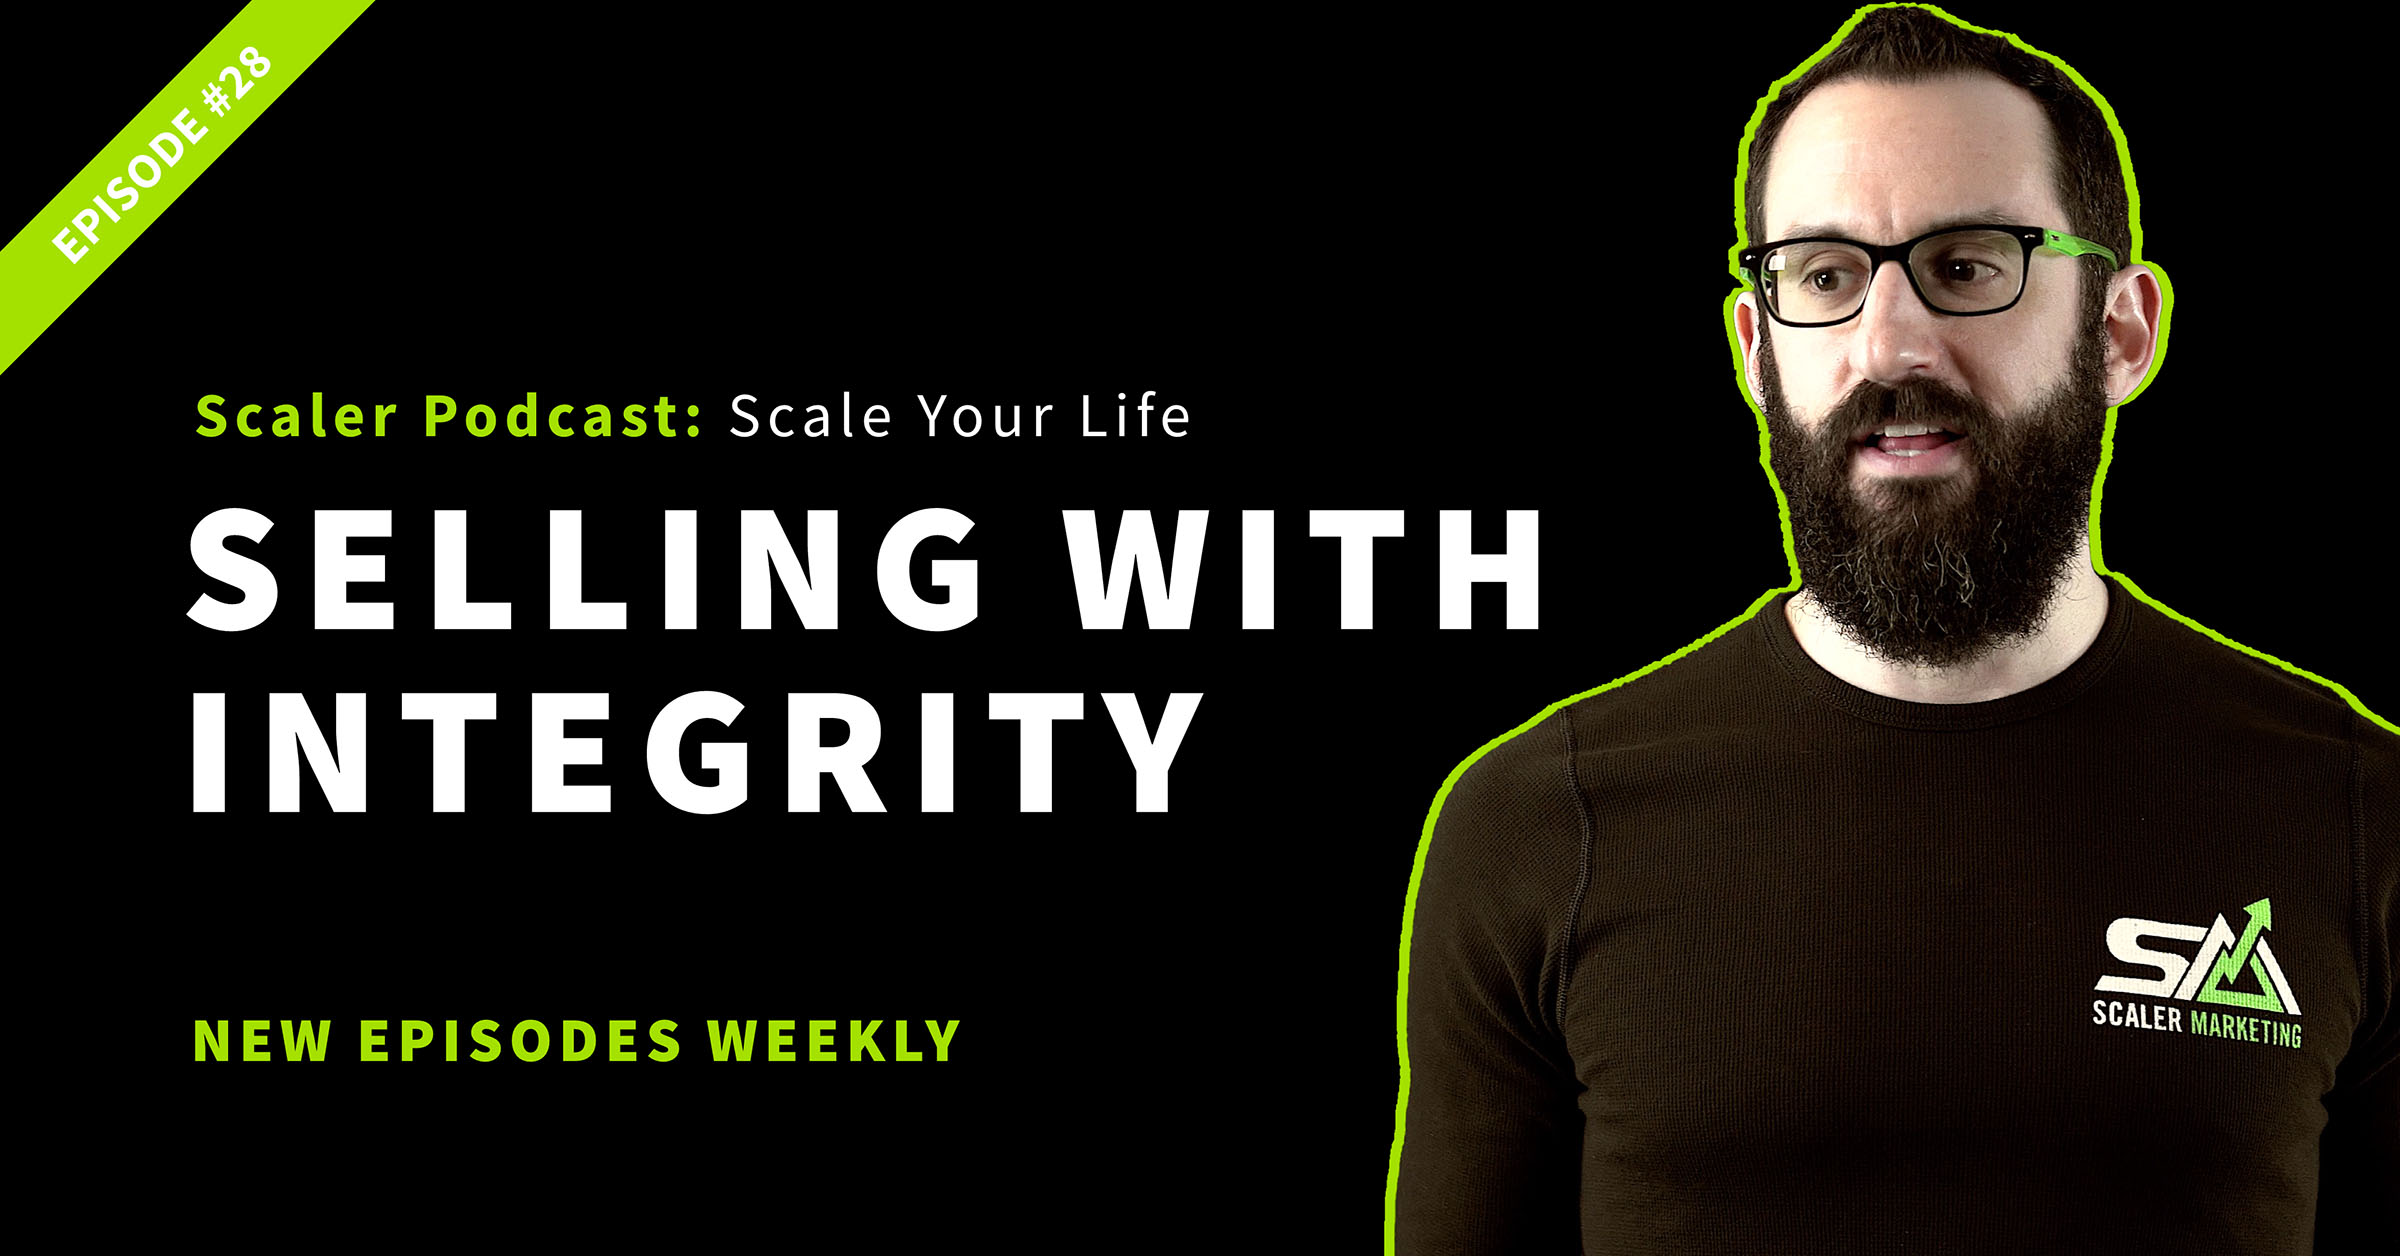 Episode 28 - Selling With Integrity